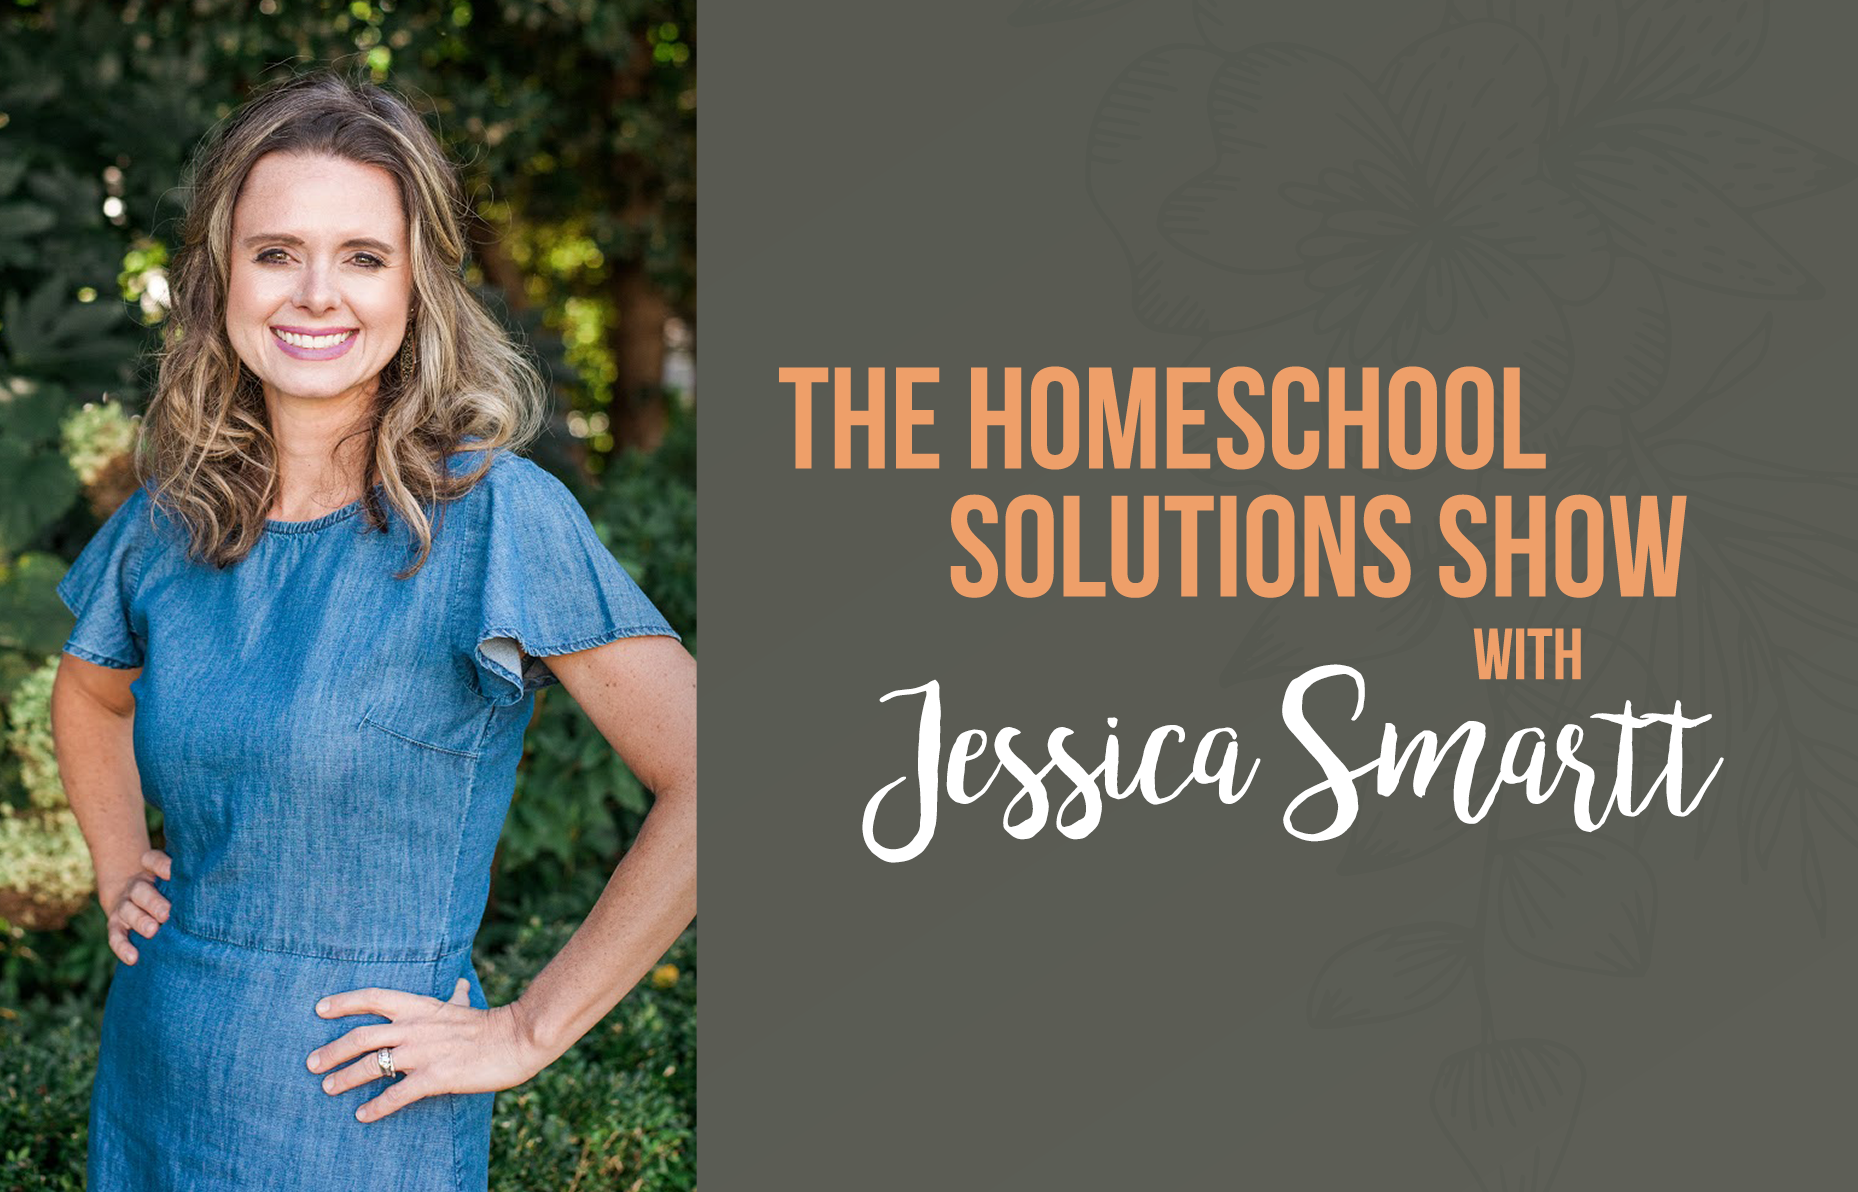 HS Episode #252 Identify Issues In The Homeschool Mother with Jessica Smartt and Rachel Jankovic